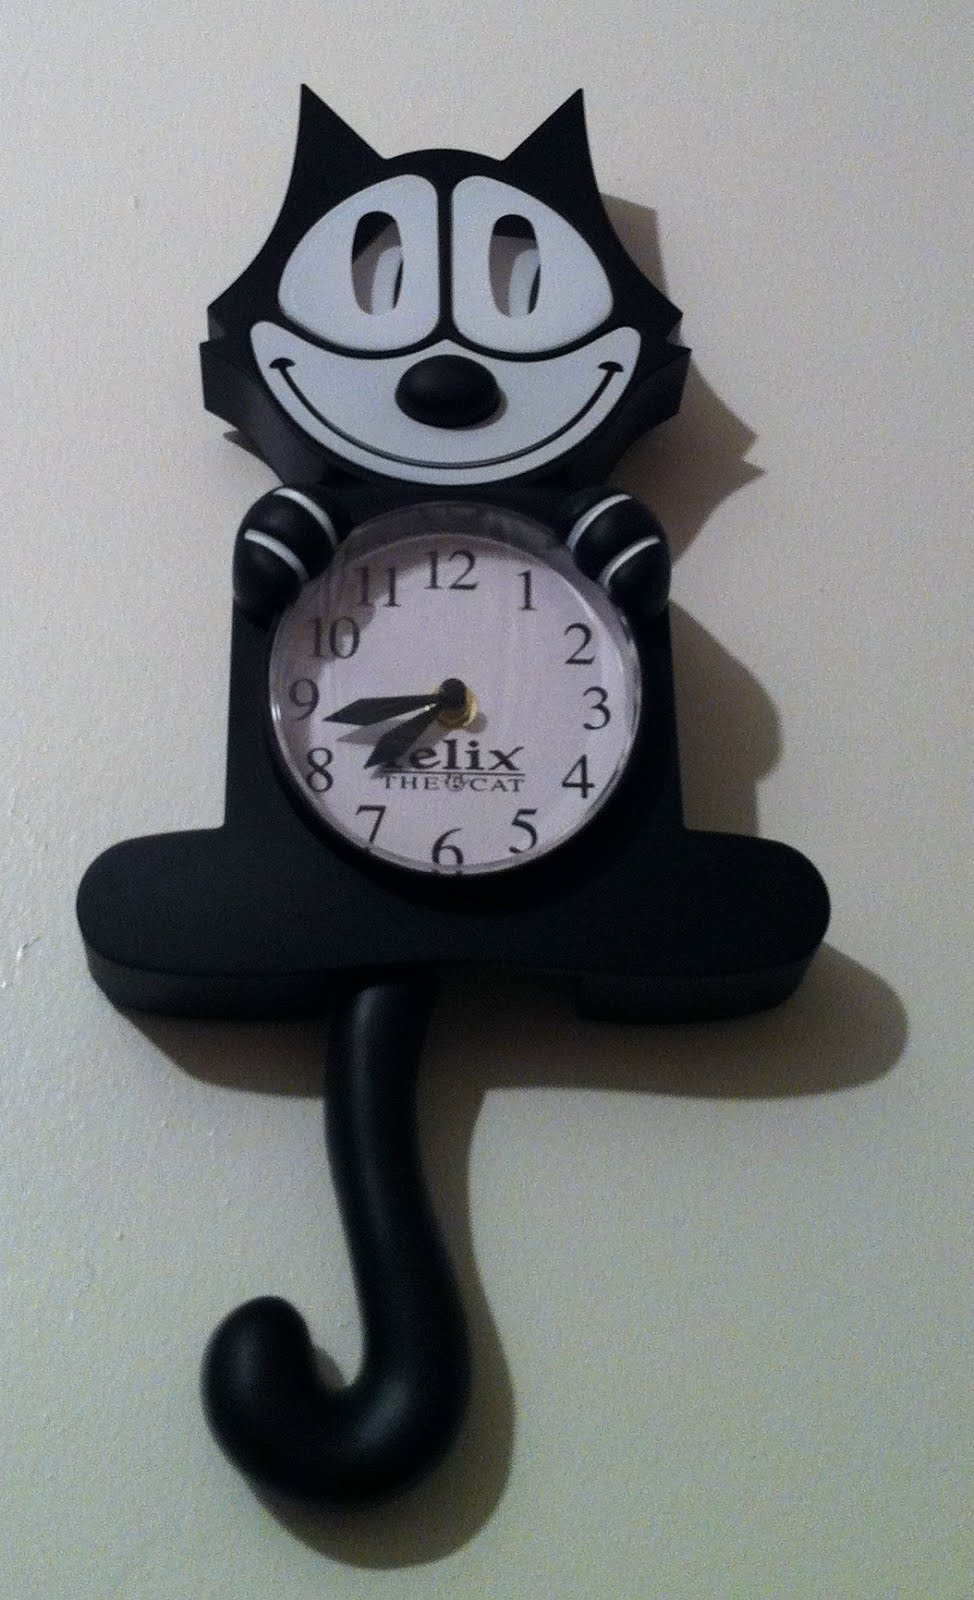 The angry redheaded lawyer ny comic con day 1 shopping ahoy the tail is a pendulum and the eyes move my husbands wanted one of those classic cat clocks for ages i always thought they were neat so this was another amipublicfo Gallery